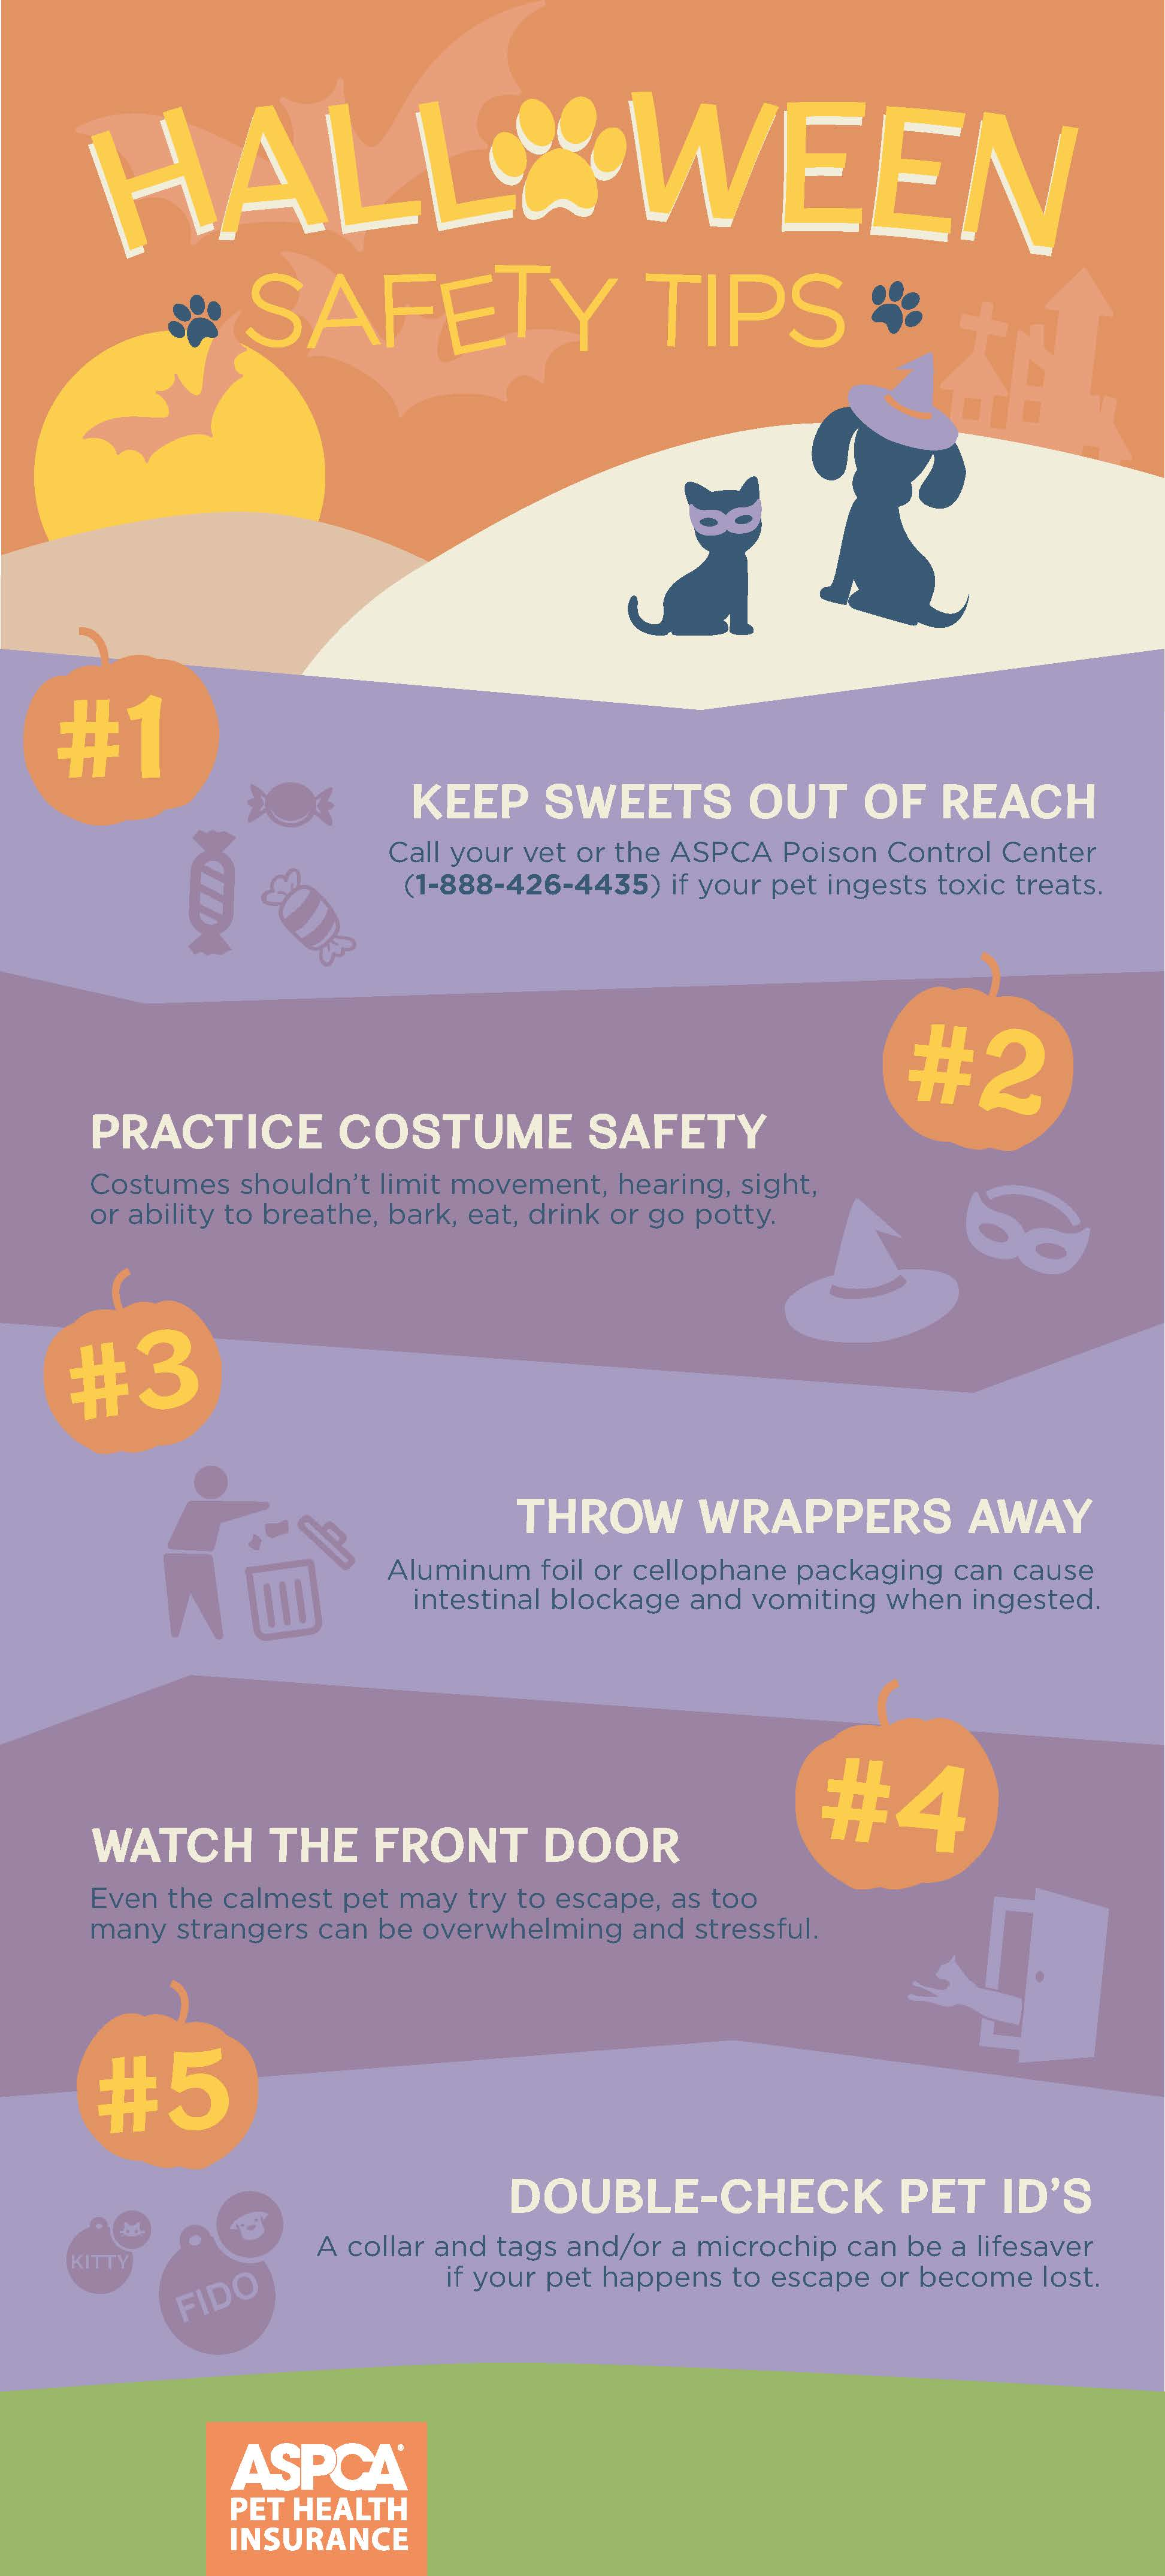 Halloween Safety Tips.jpg